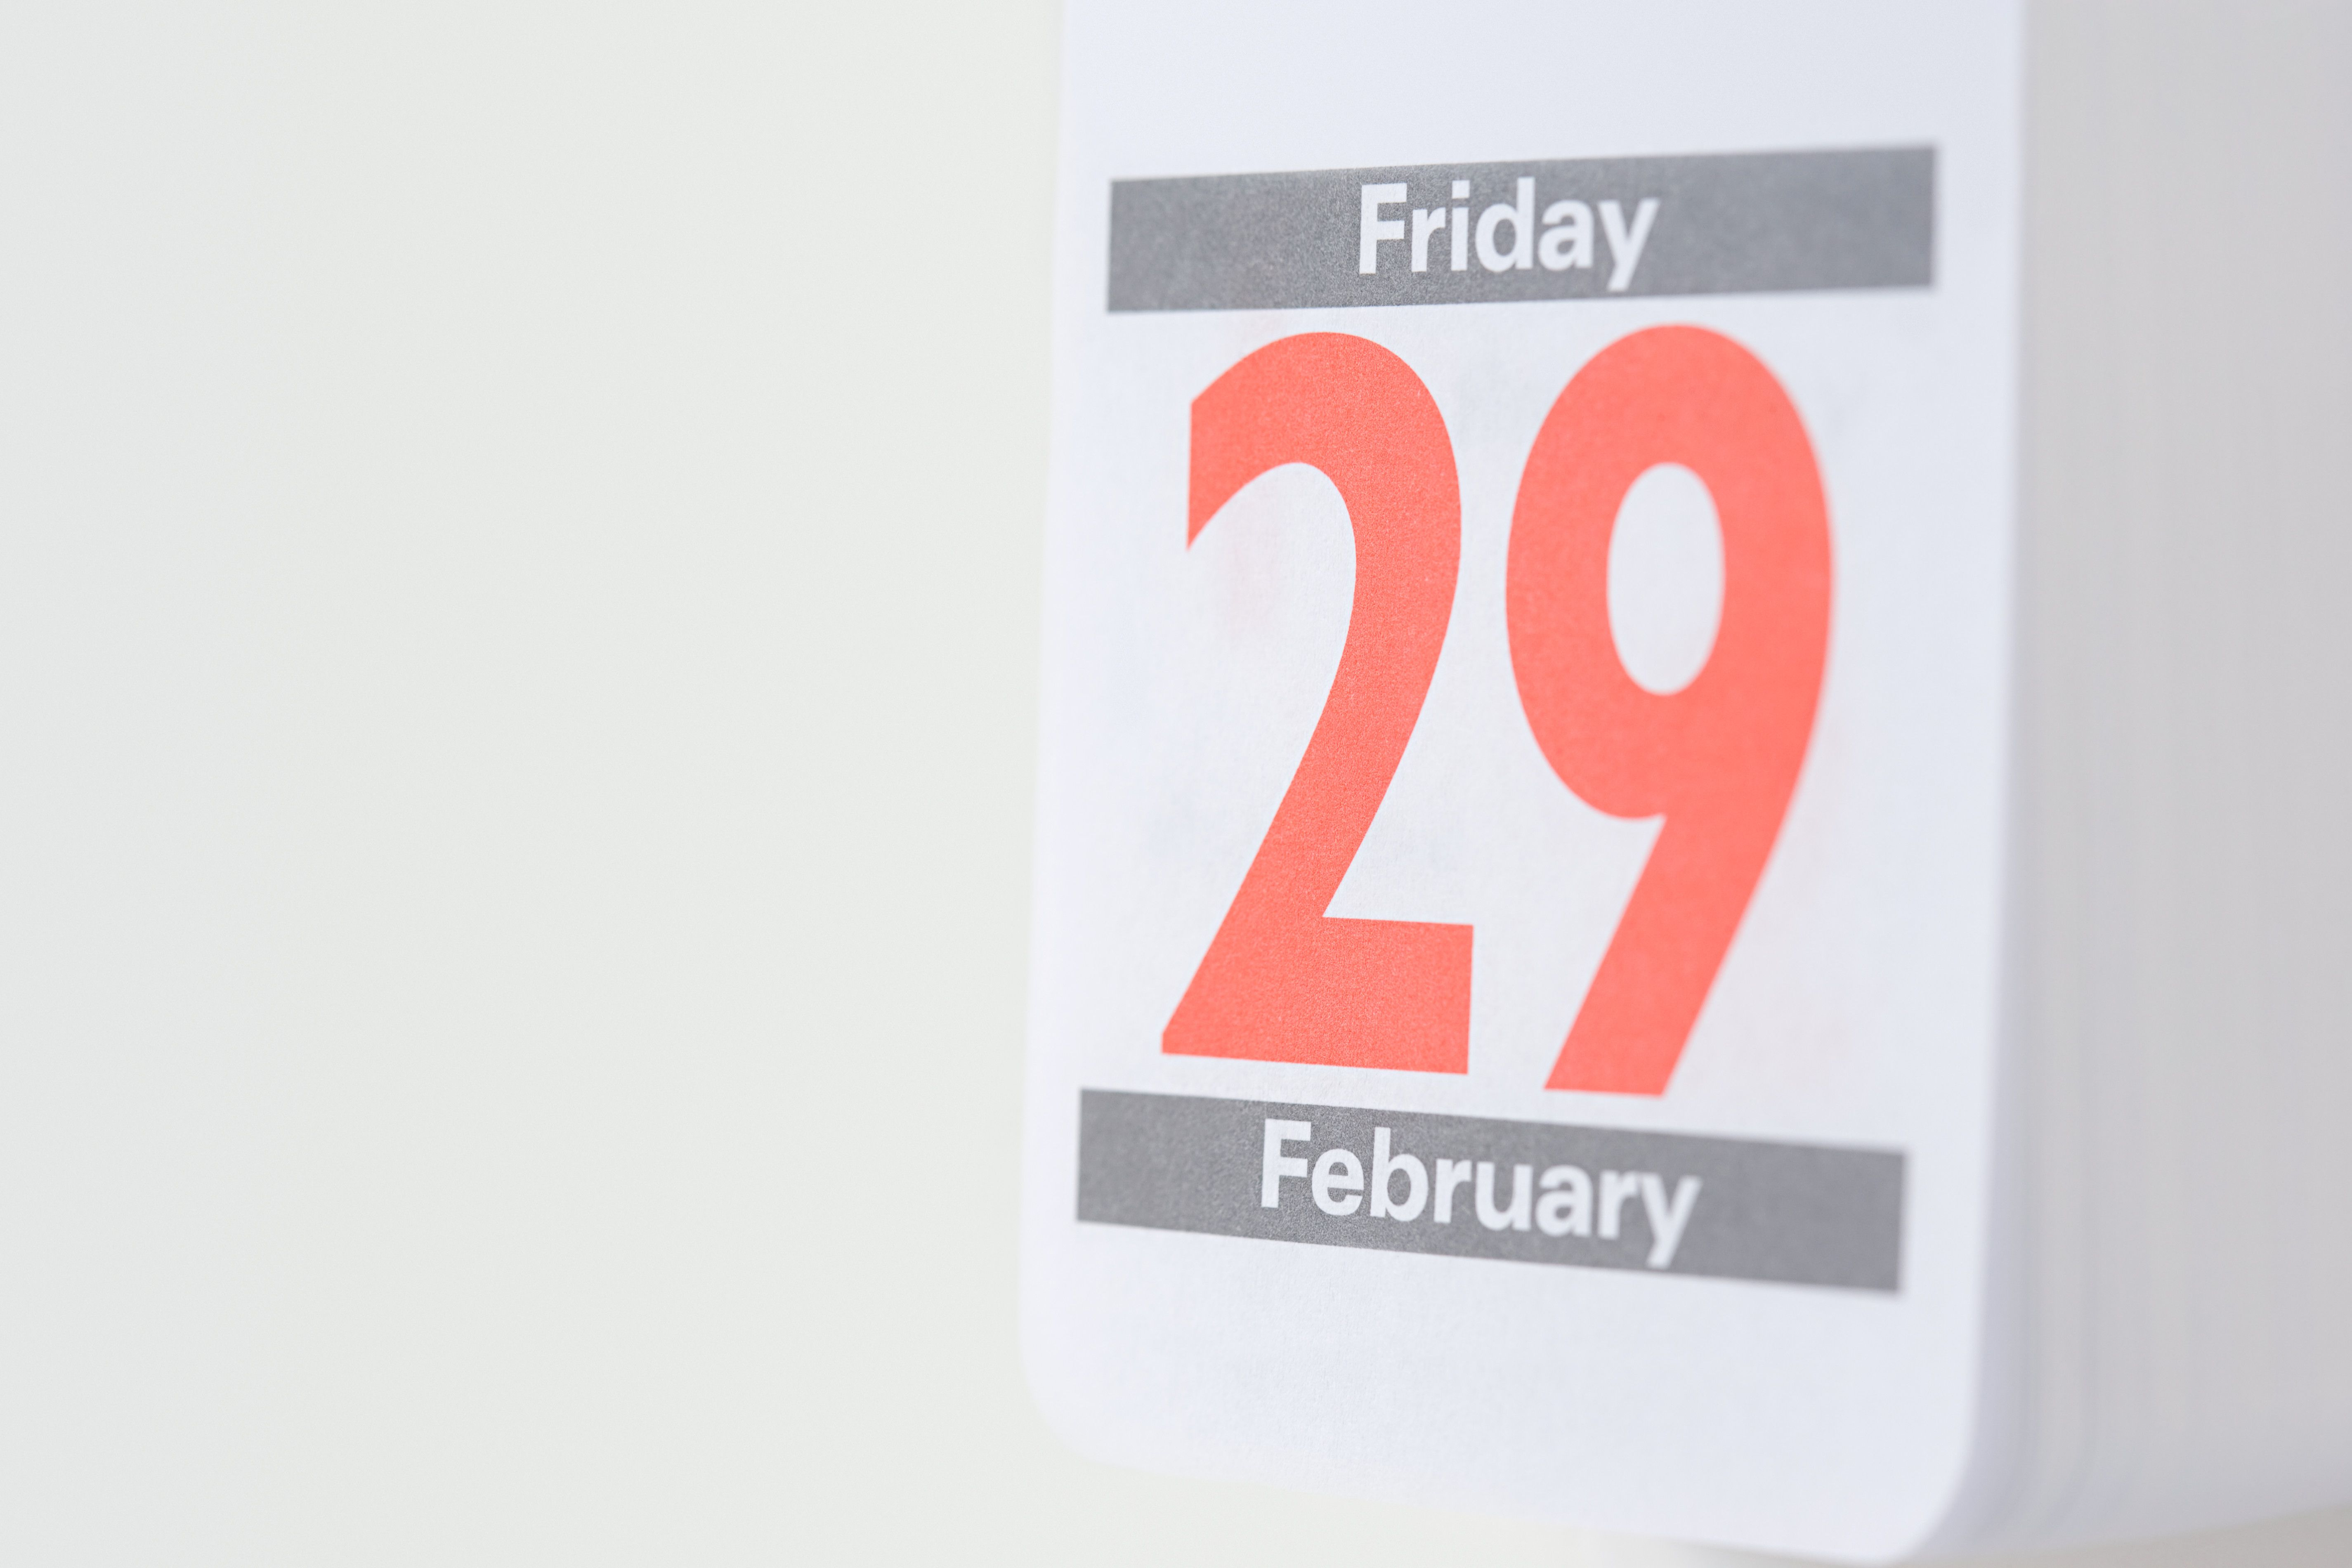 Special Days And Observances In February